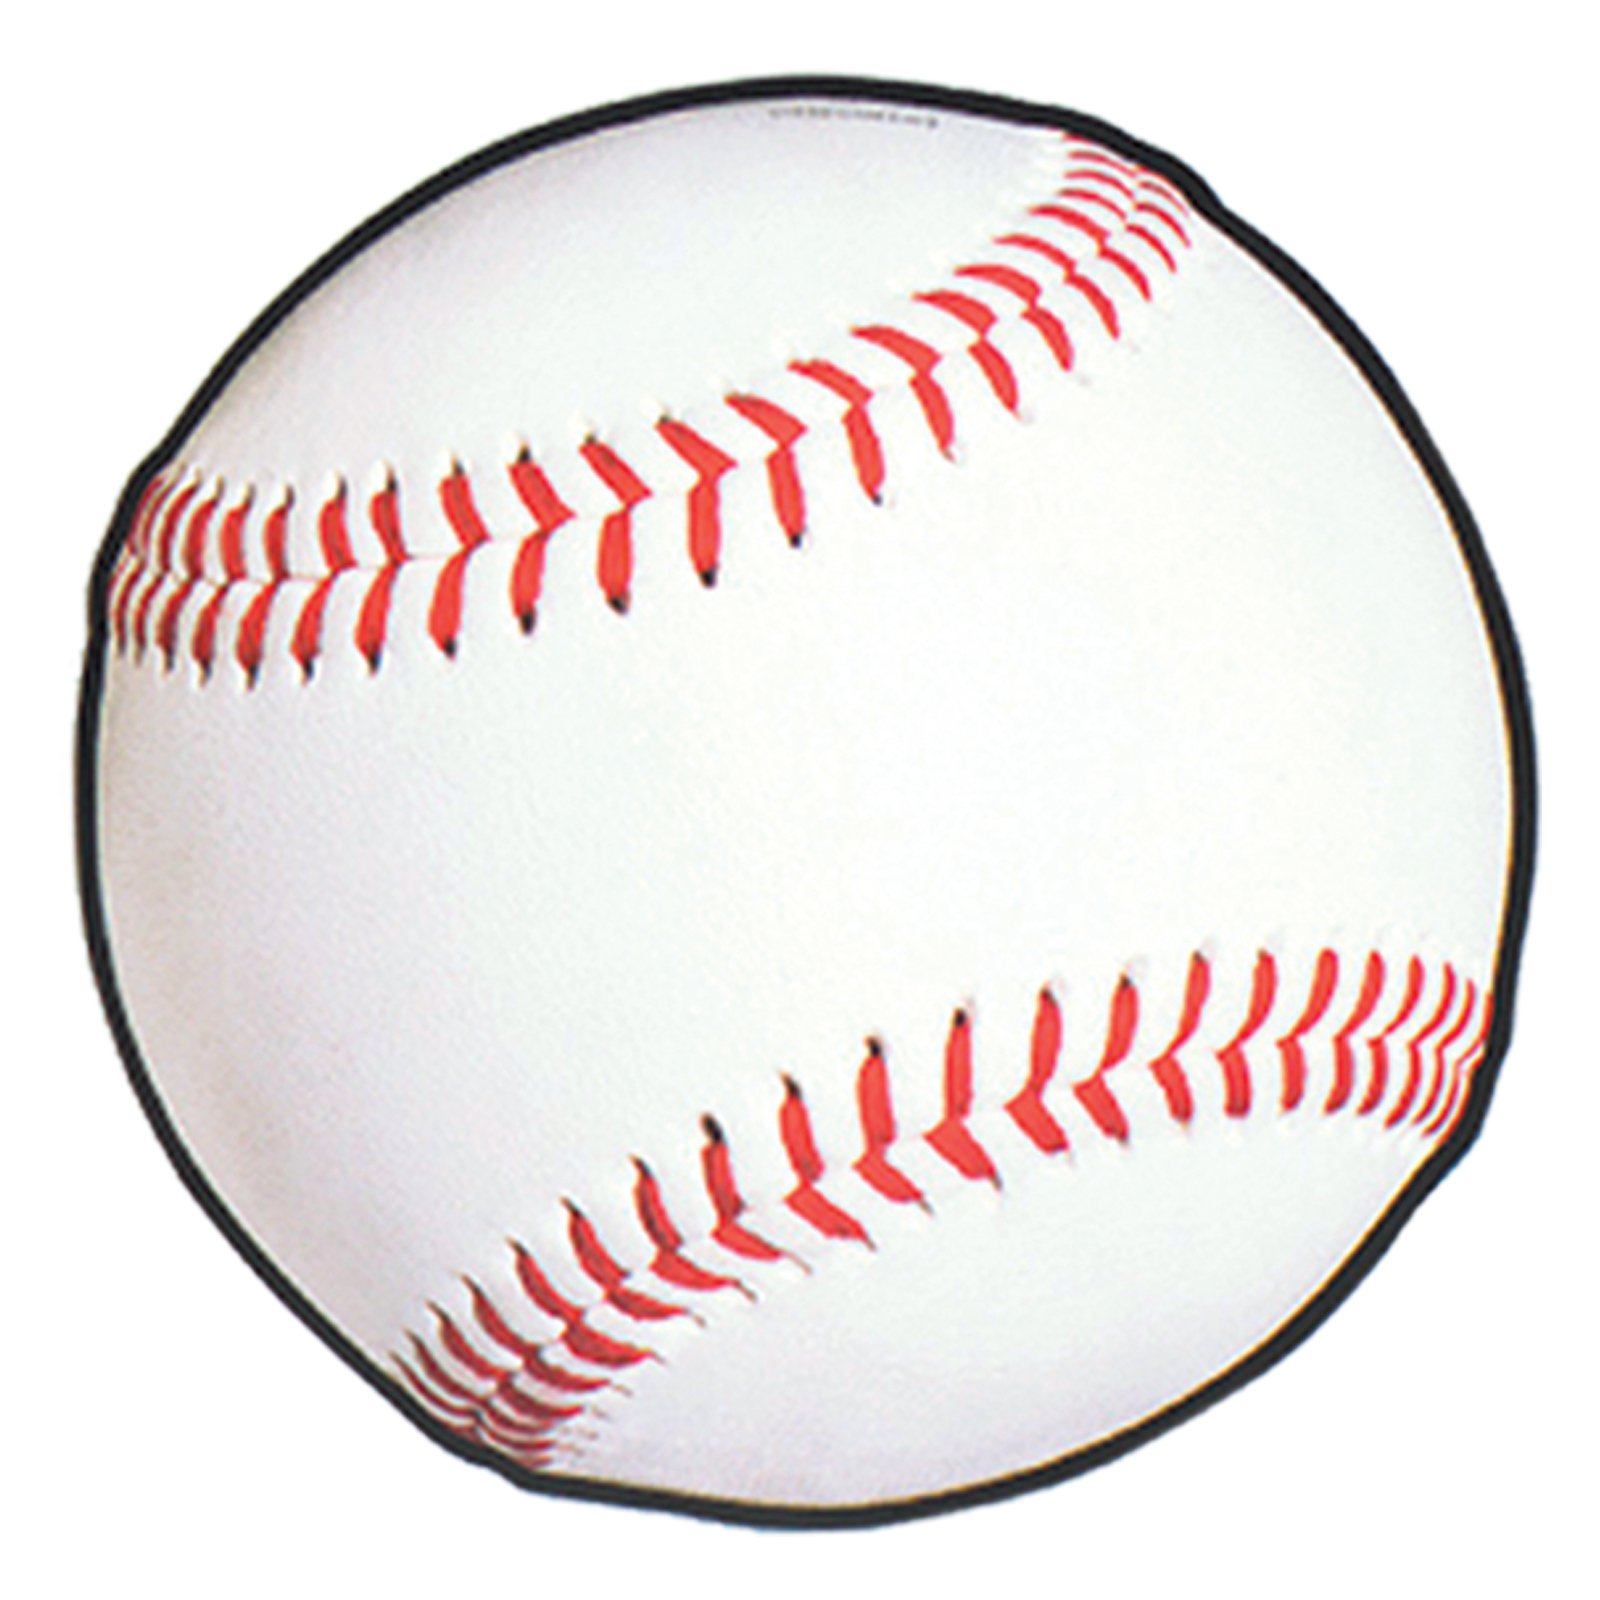 White baseball ball for clipart free image.